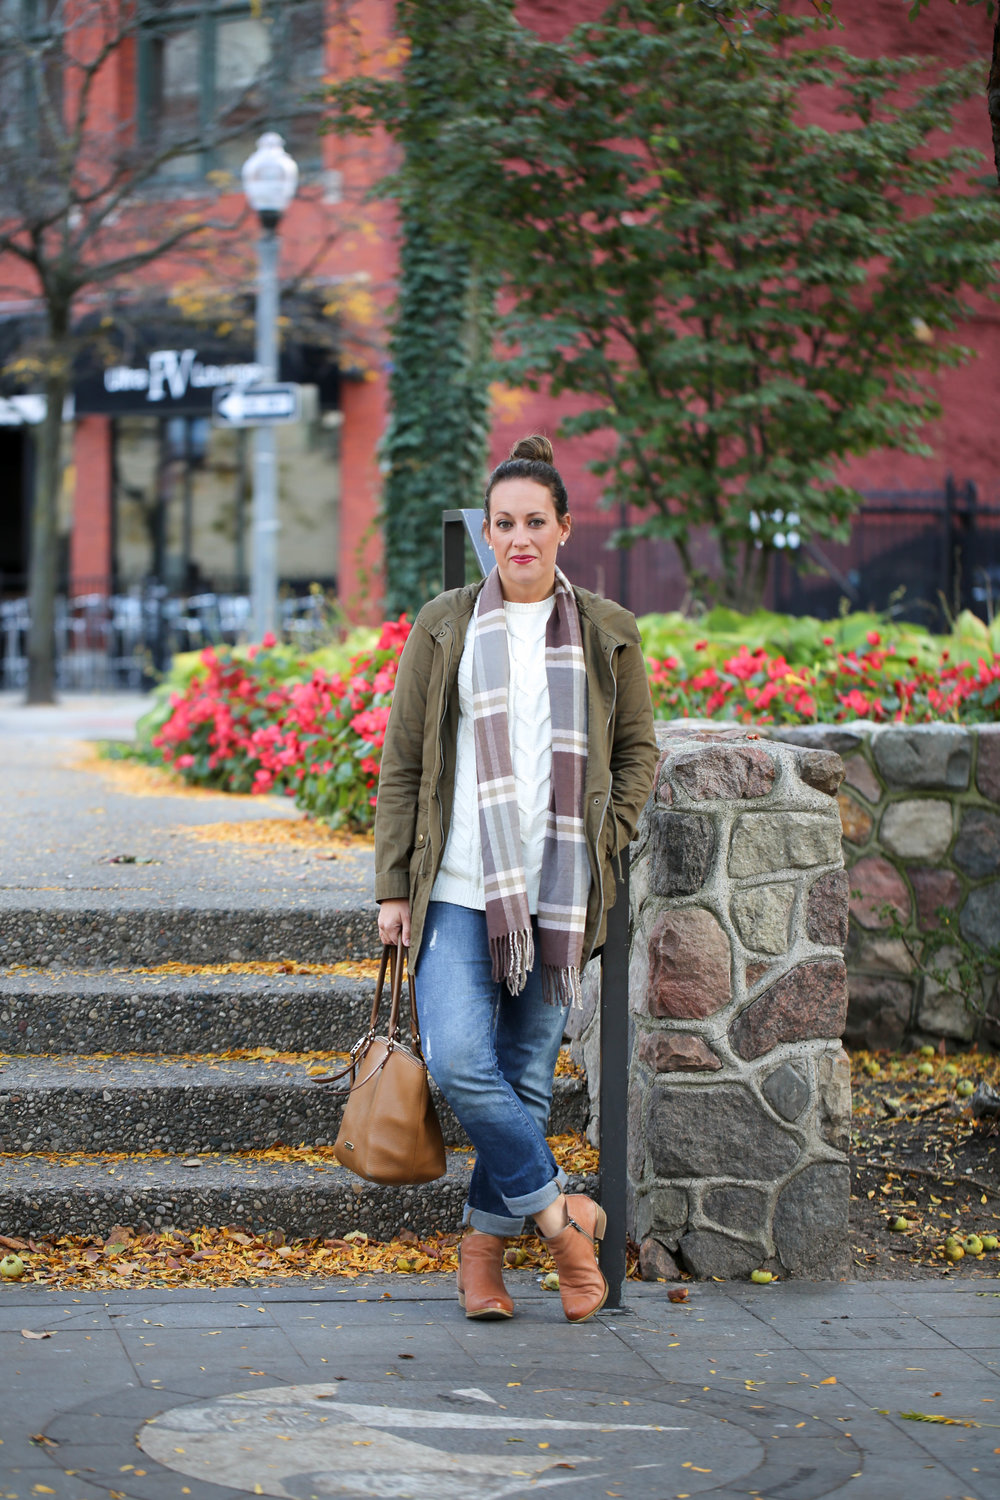 green jacket outfit with layers for fall,fall outfit of the day, fall layers, army jacket, life update, olivia james apparel, seasons changing, red lipstick, finding the perfect jacket, layering with scarves,